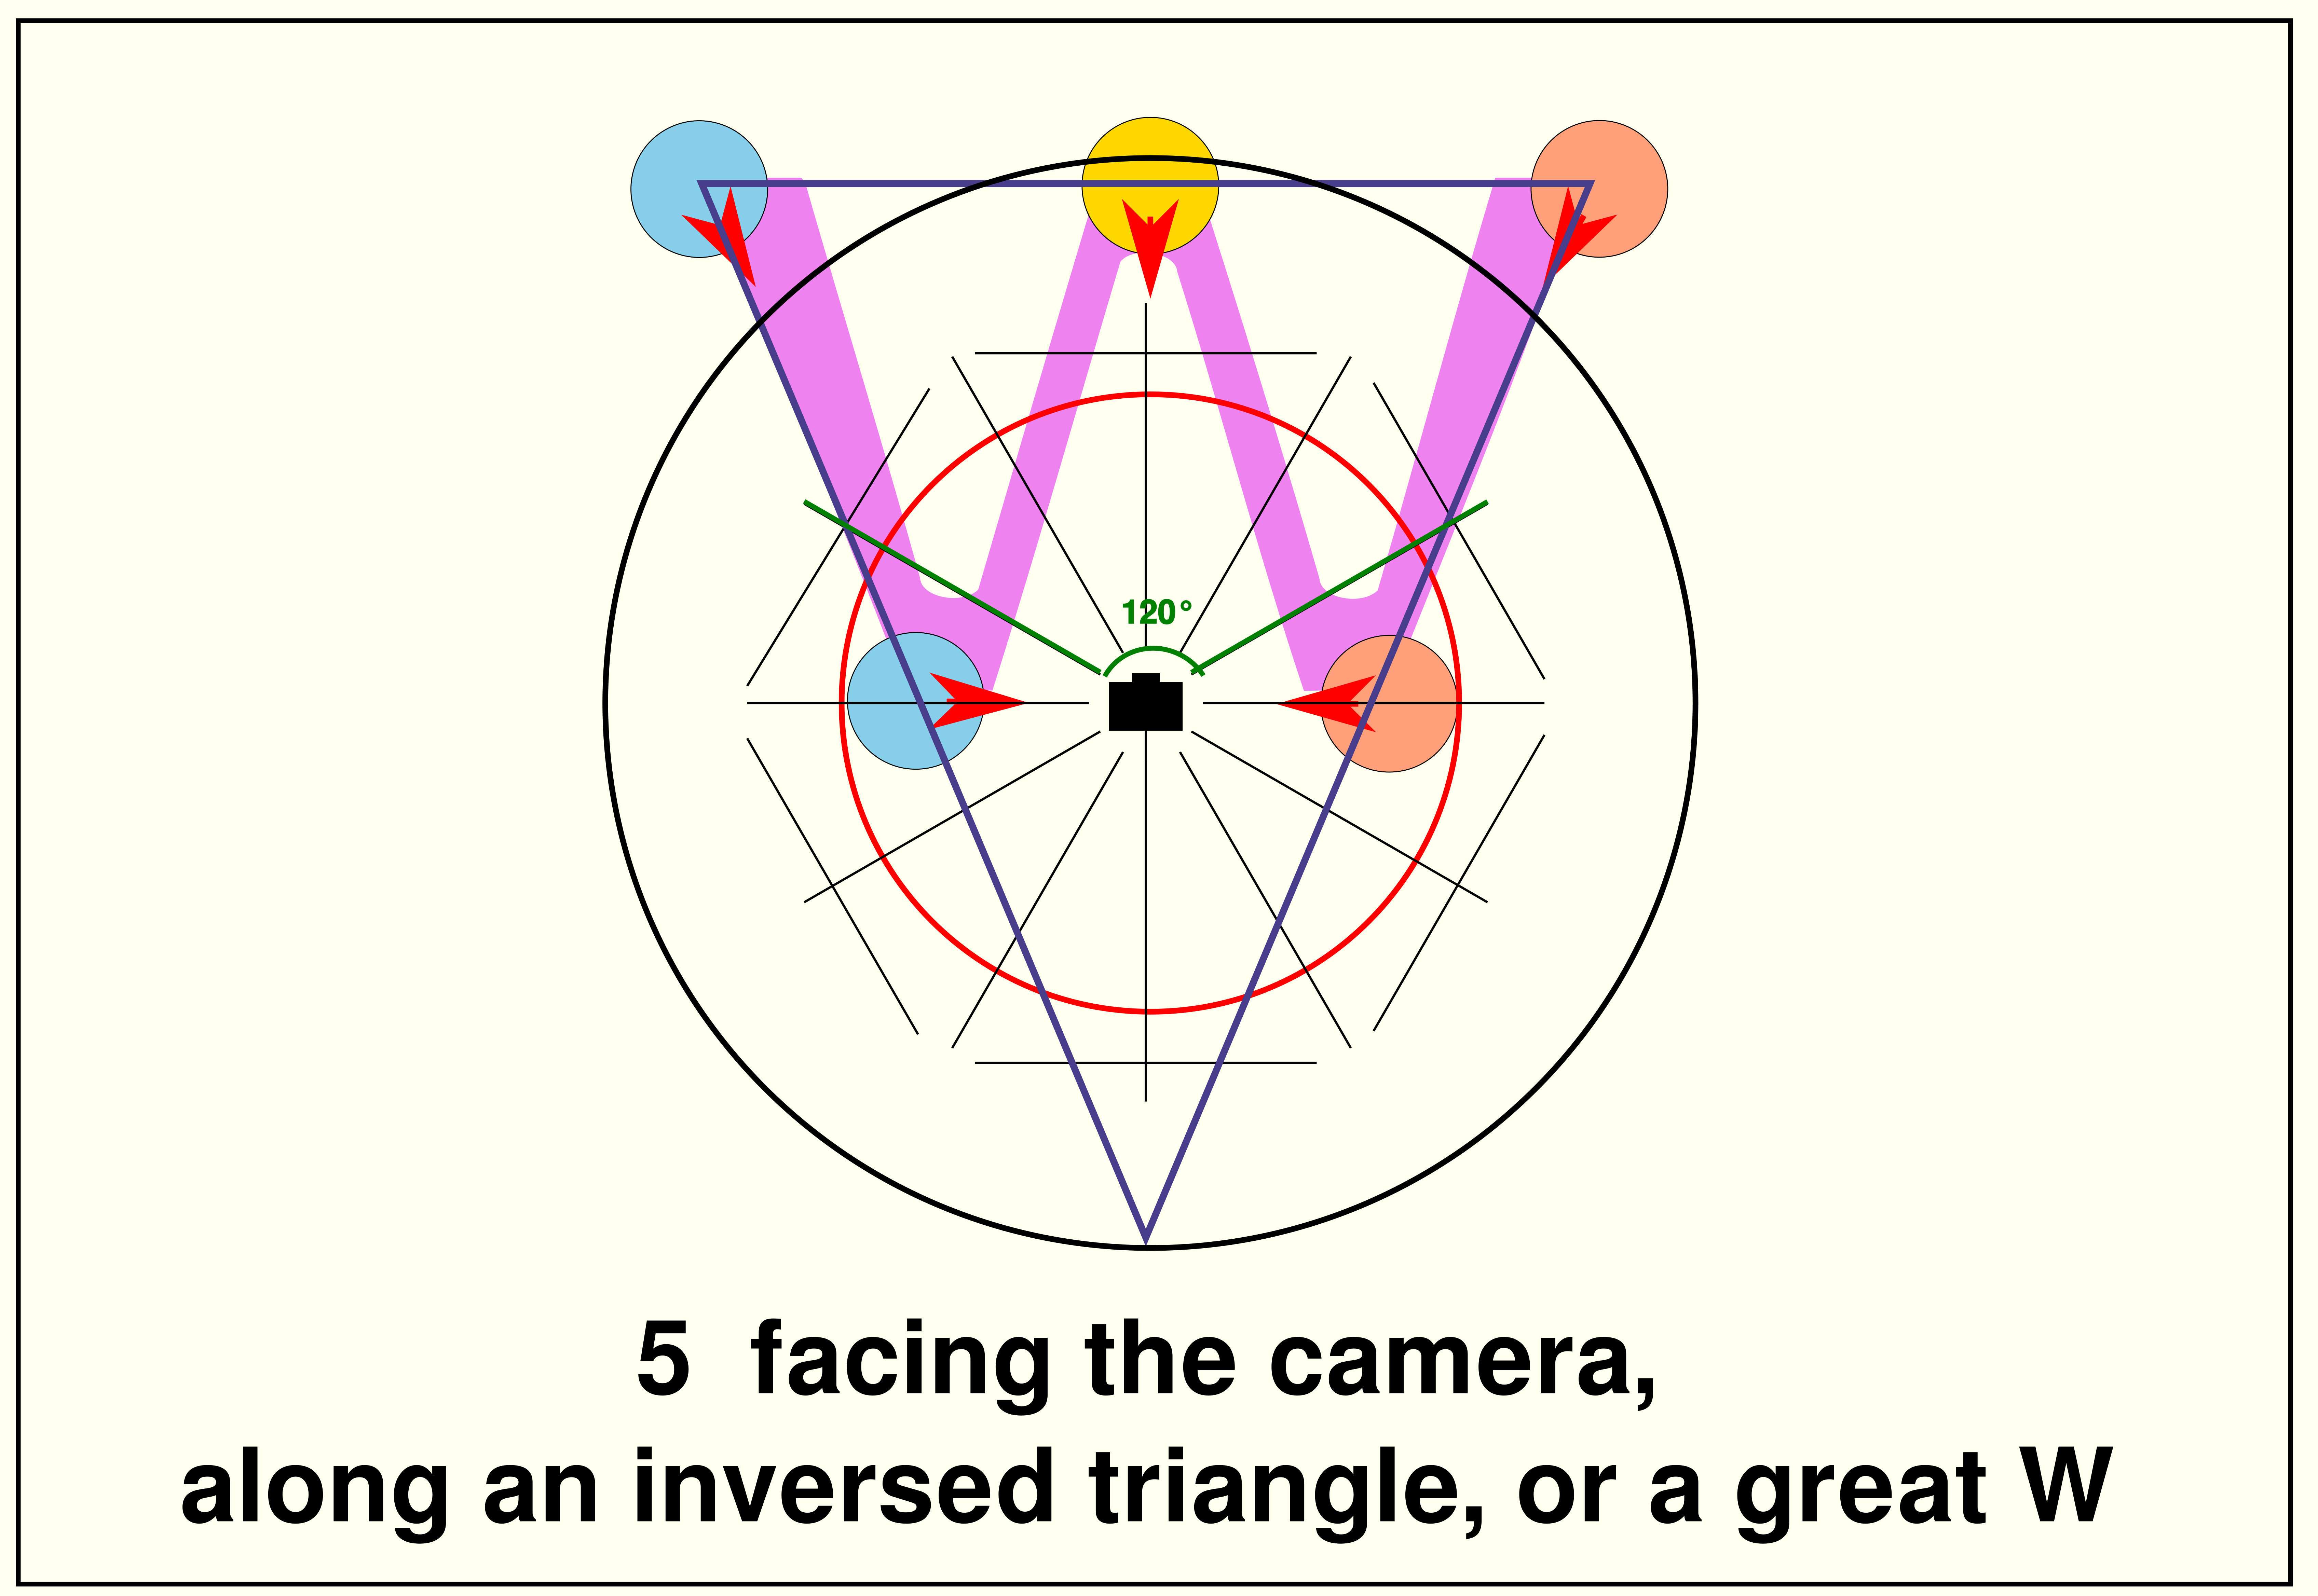 5-facing the camera W schema